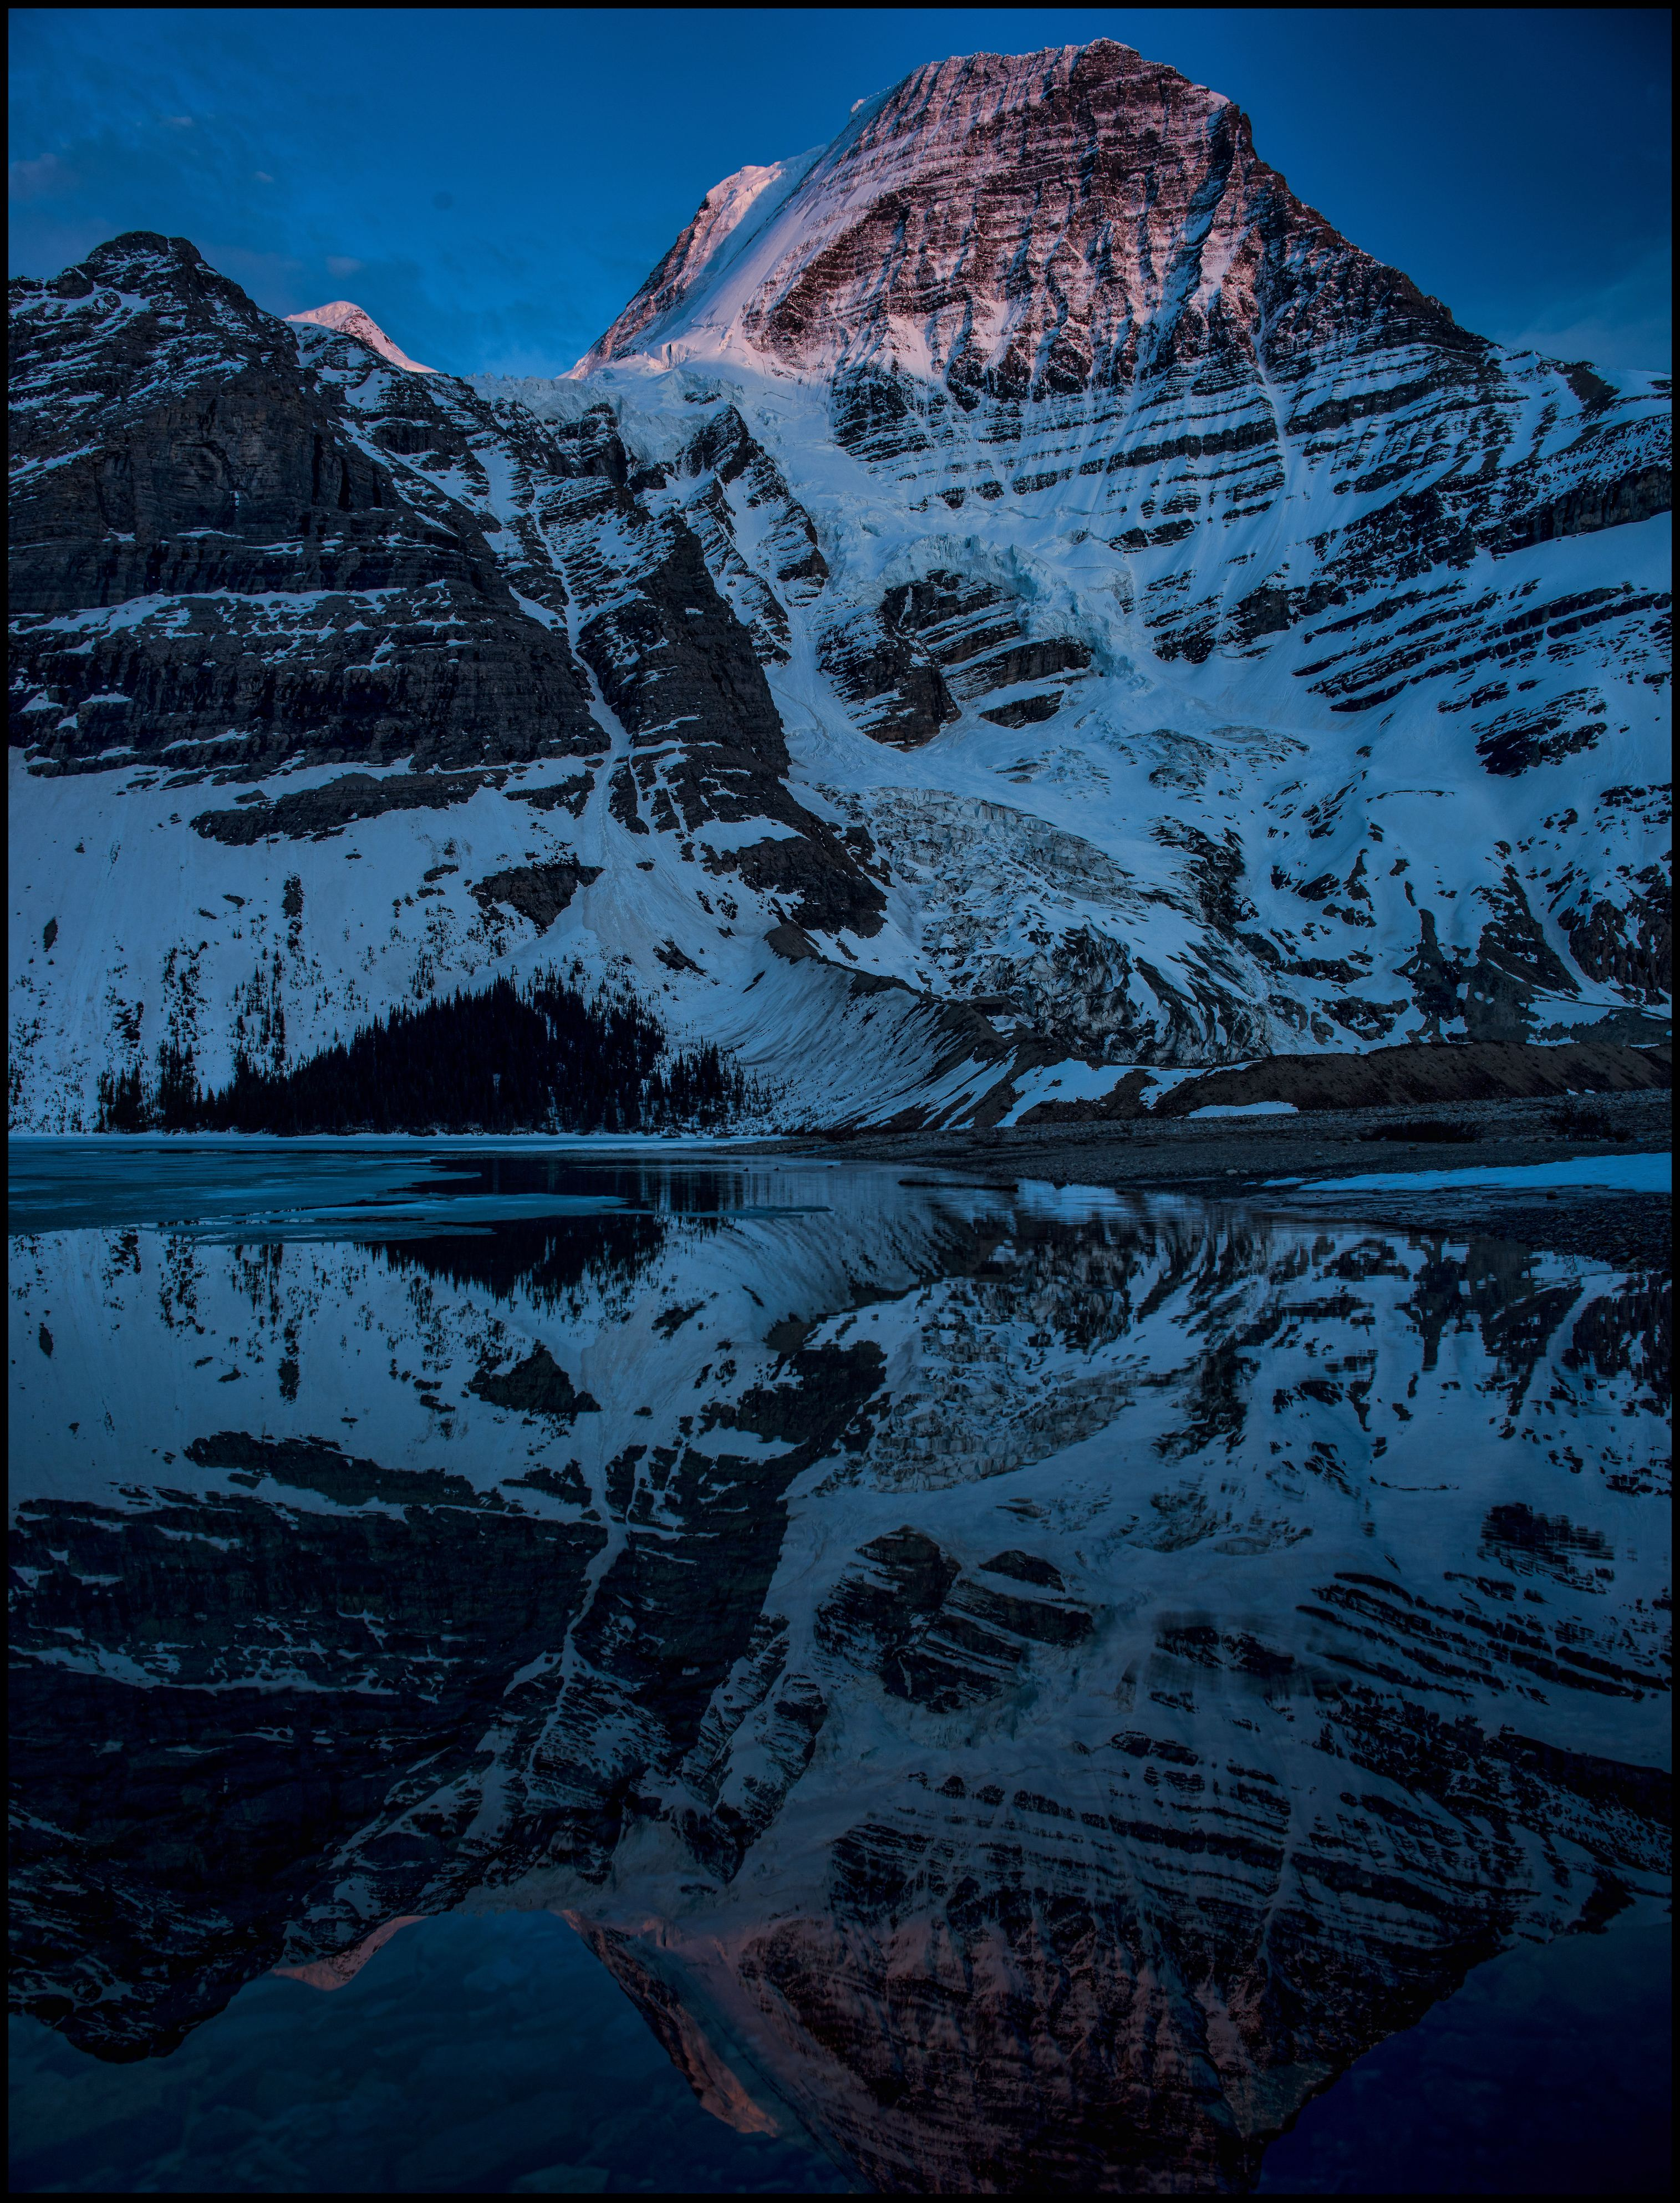 Mount Robson reflections at sunset, Berg Lake / Marmot campsite, Sony A7 / Canon FD Tilt Shift 35 Sony A7 / Canon FD Tilt Shift 35 2.8